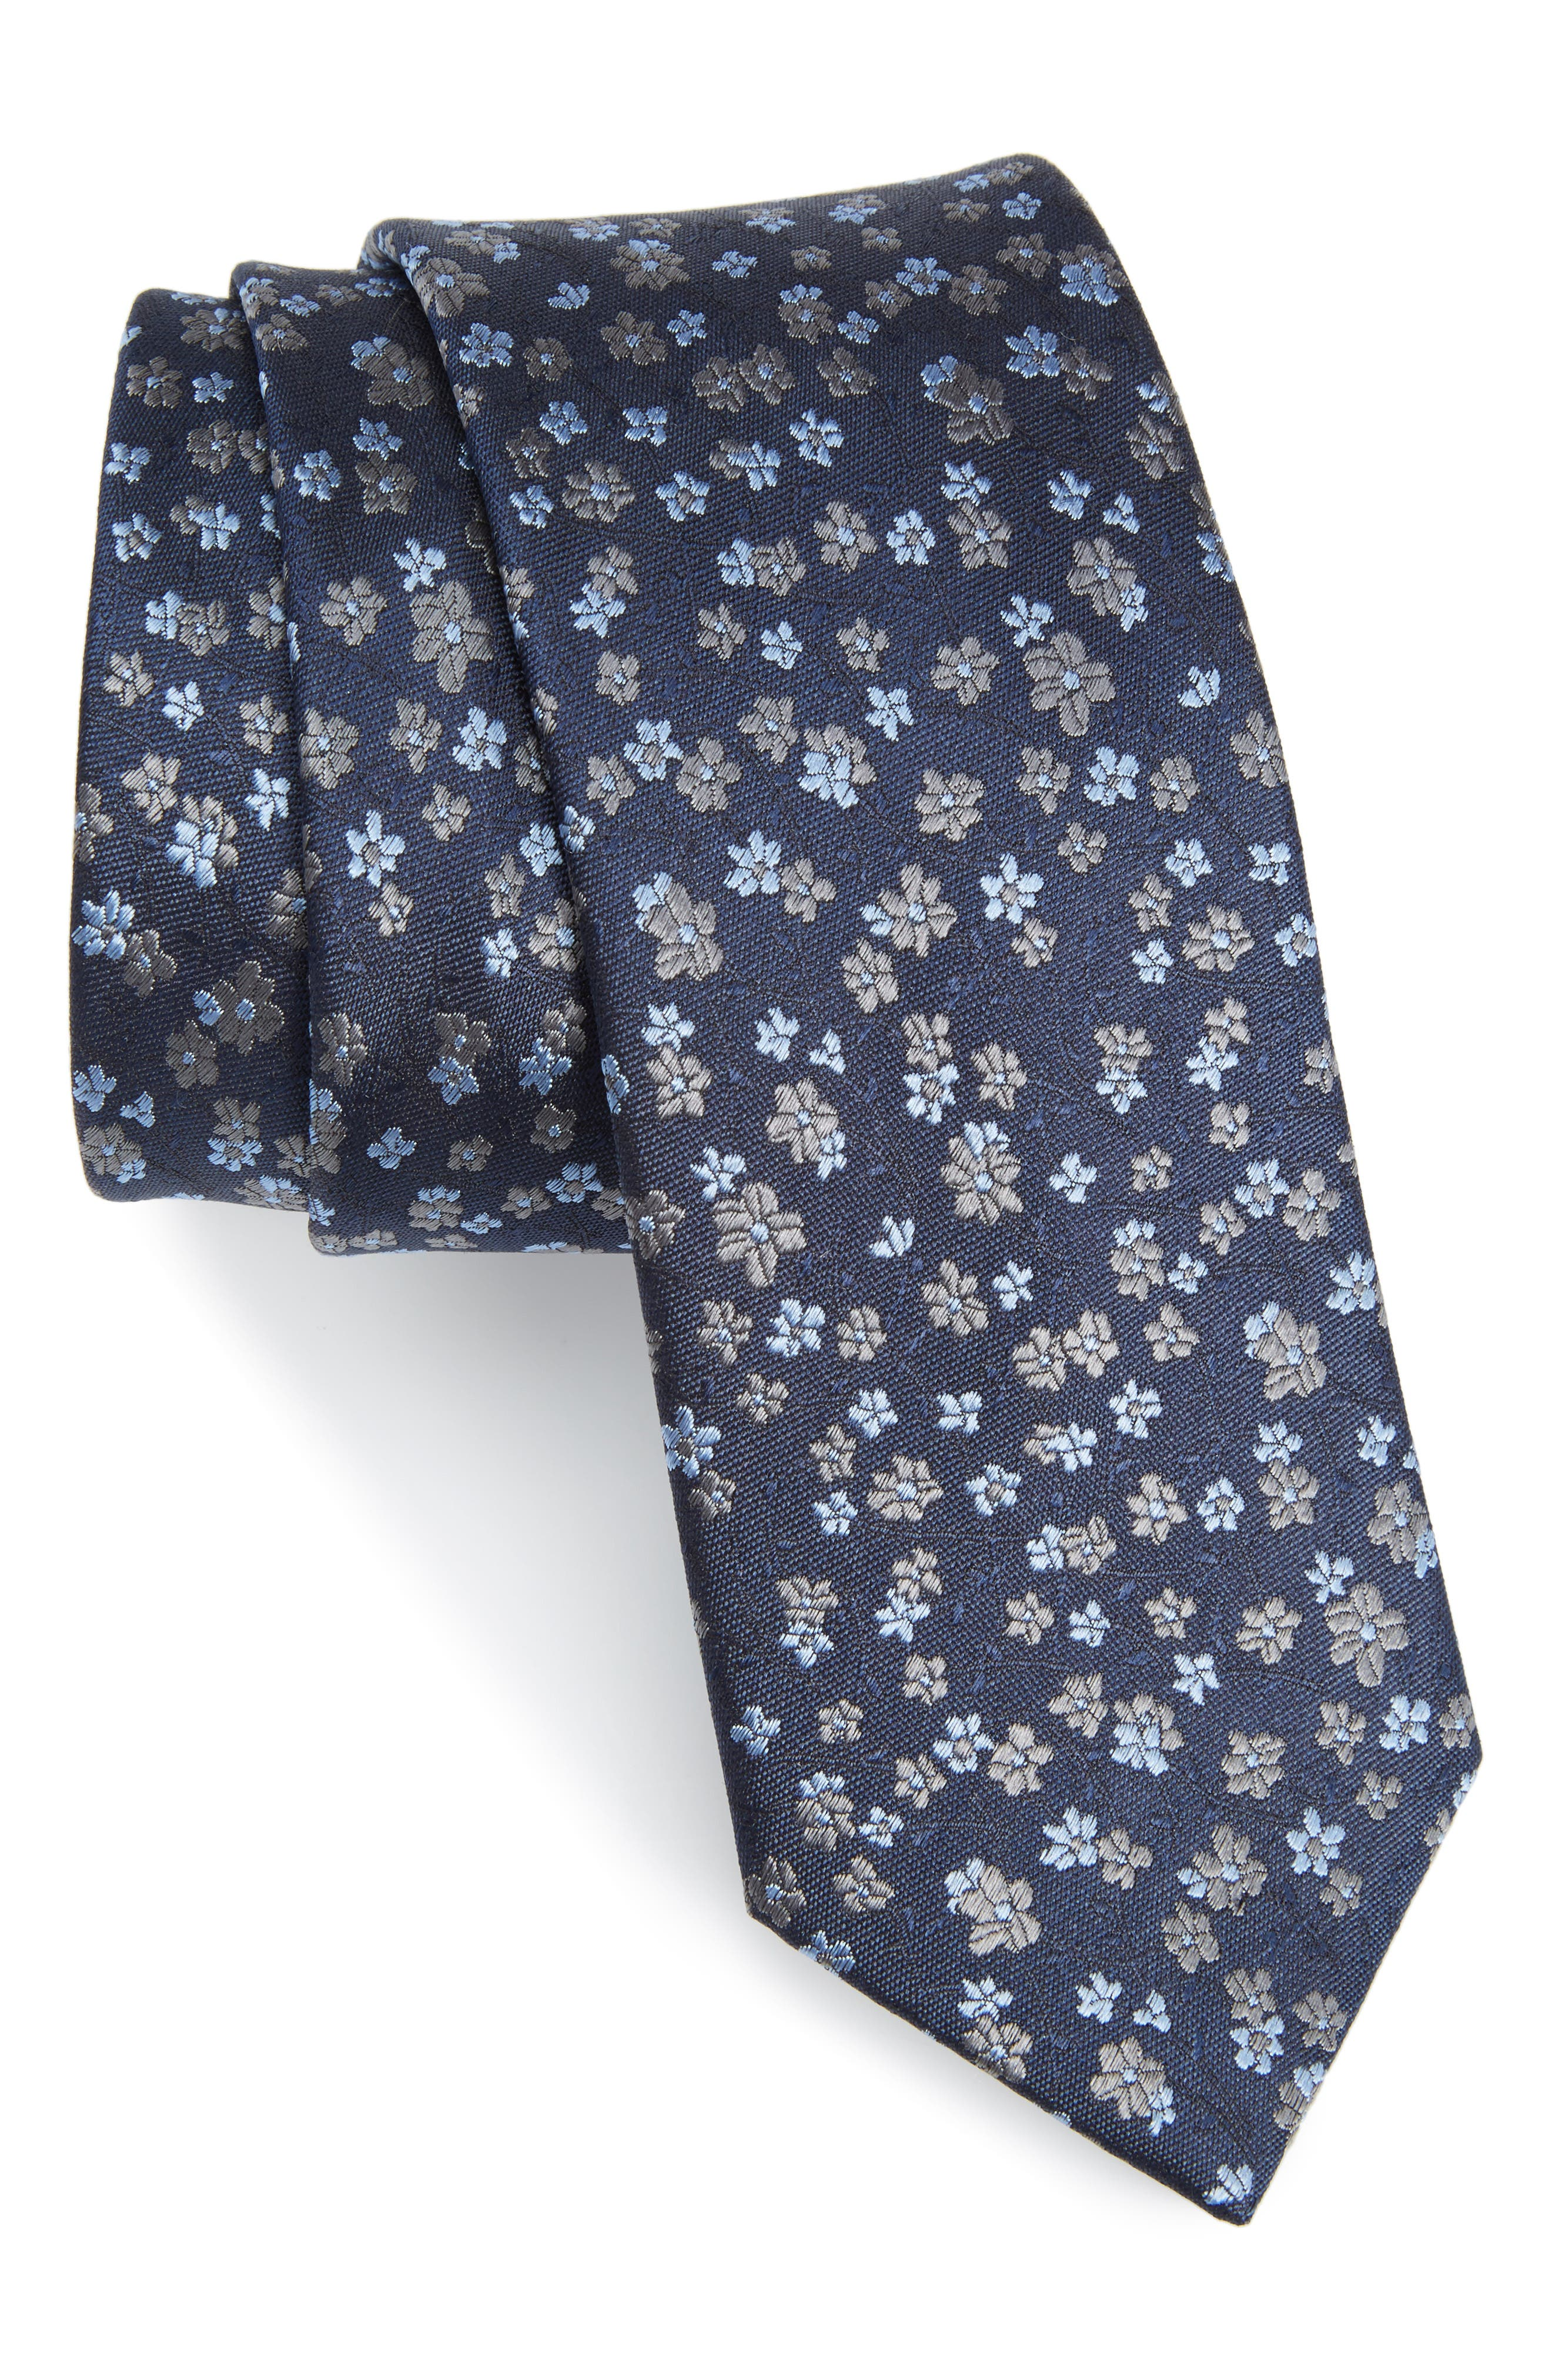 Main Image - The Tie Bar Freefall Floral Silk Tie